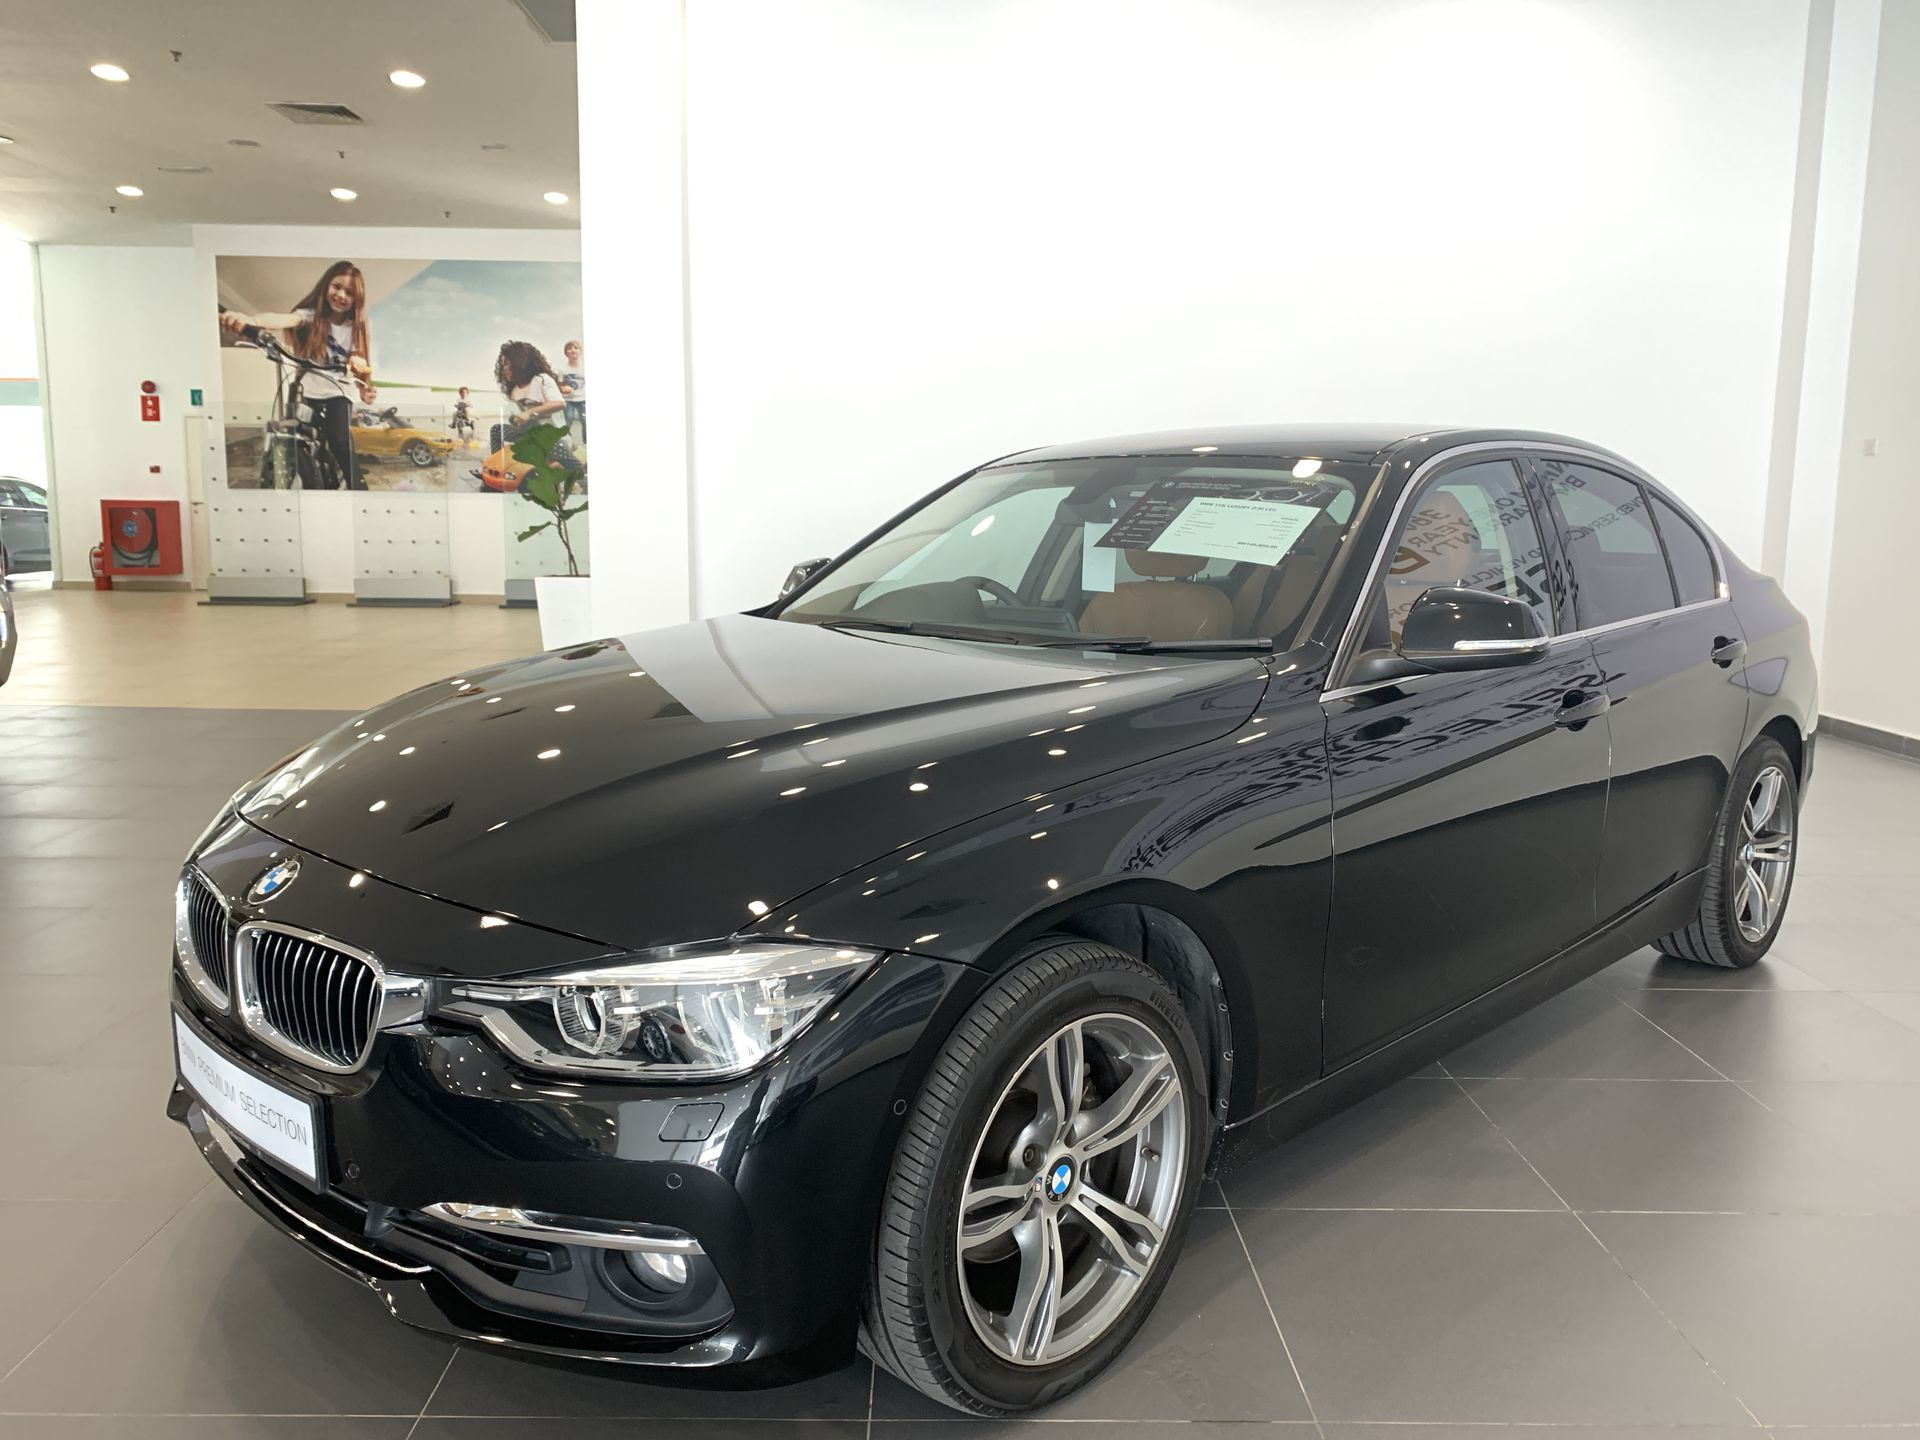 2018 BMW 318i Luxury F30 LCI - CKD